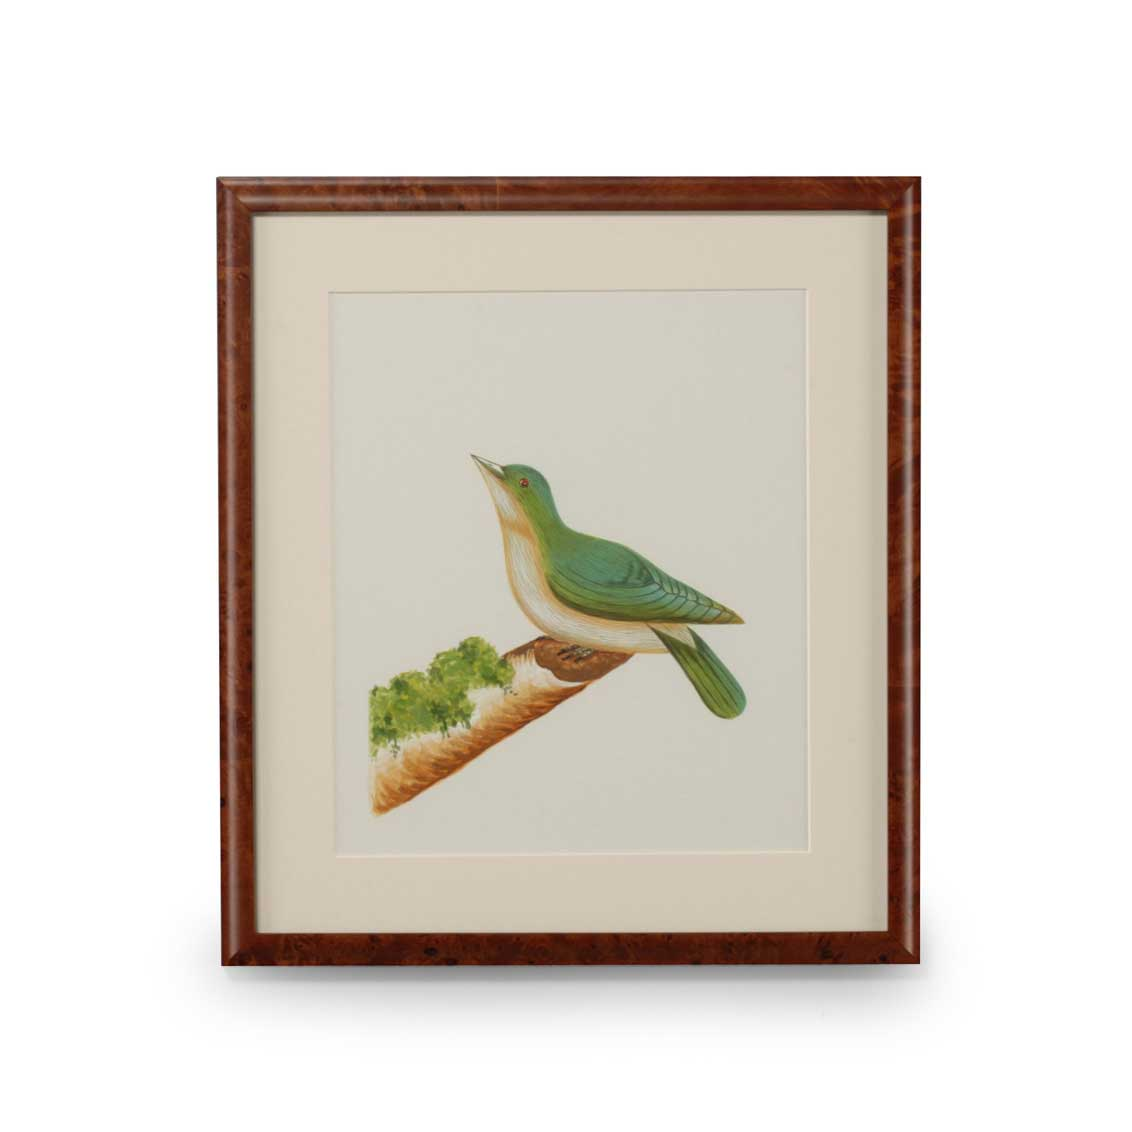 Lisa Kahn Collection Flights of Fancy XII watercolor print